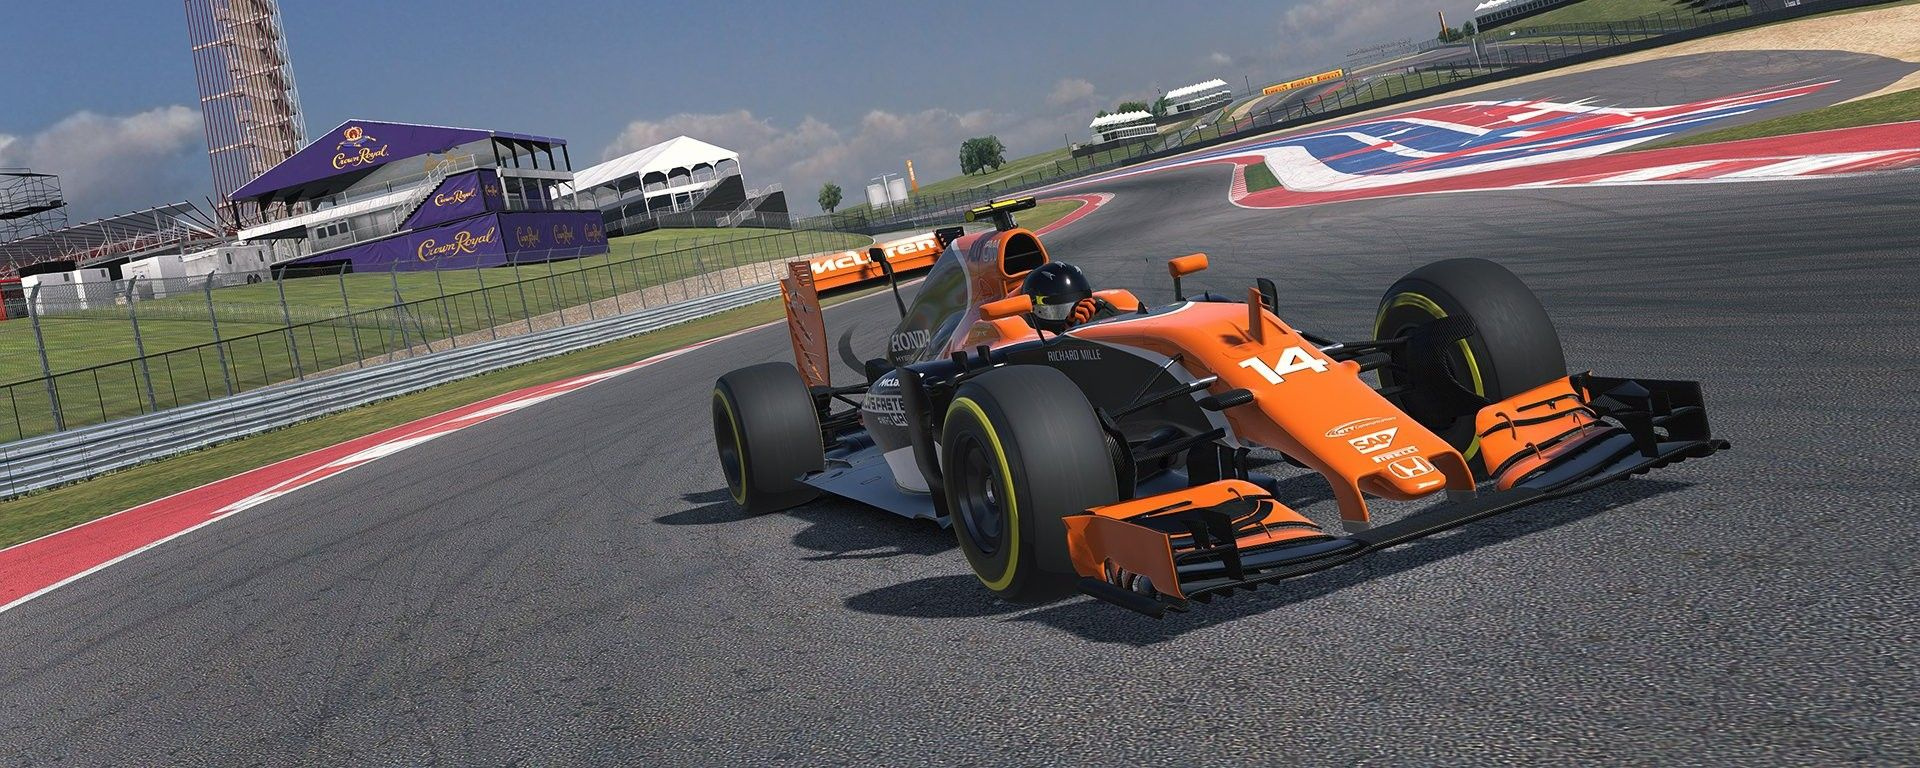 World's Fastest Gamer on iRacing, Circuit of The Americas